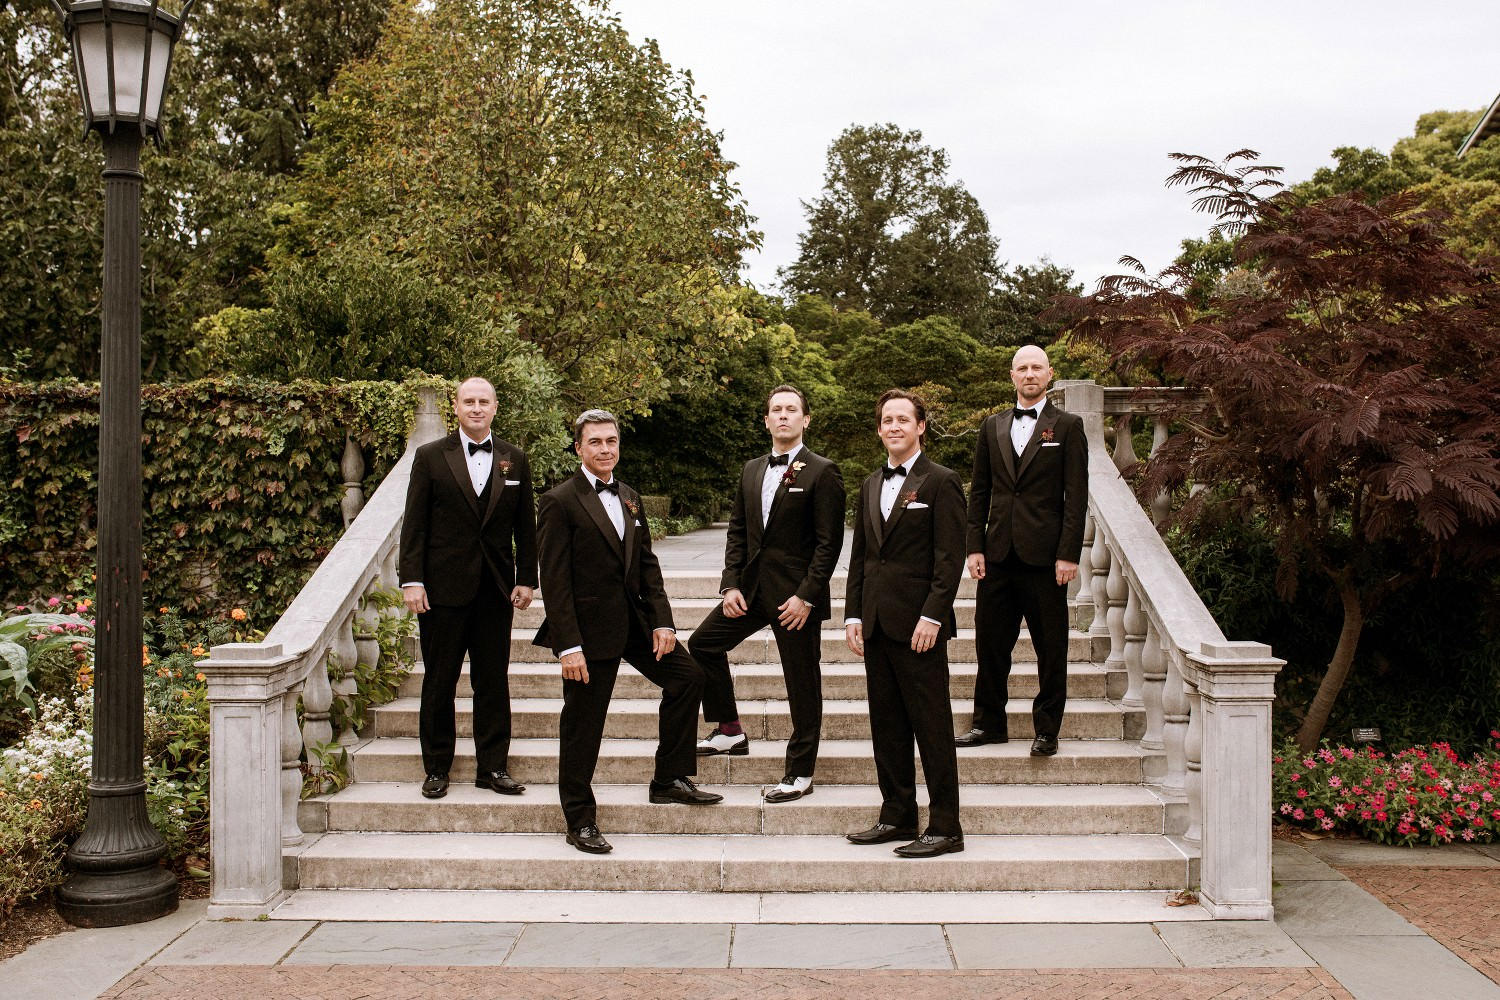 Wedding Party poses by the stairs at the Brooklyn Botanic Garden